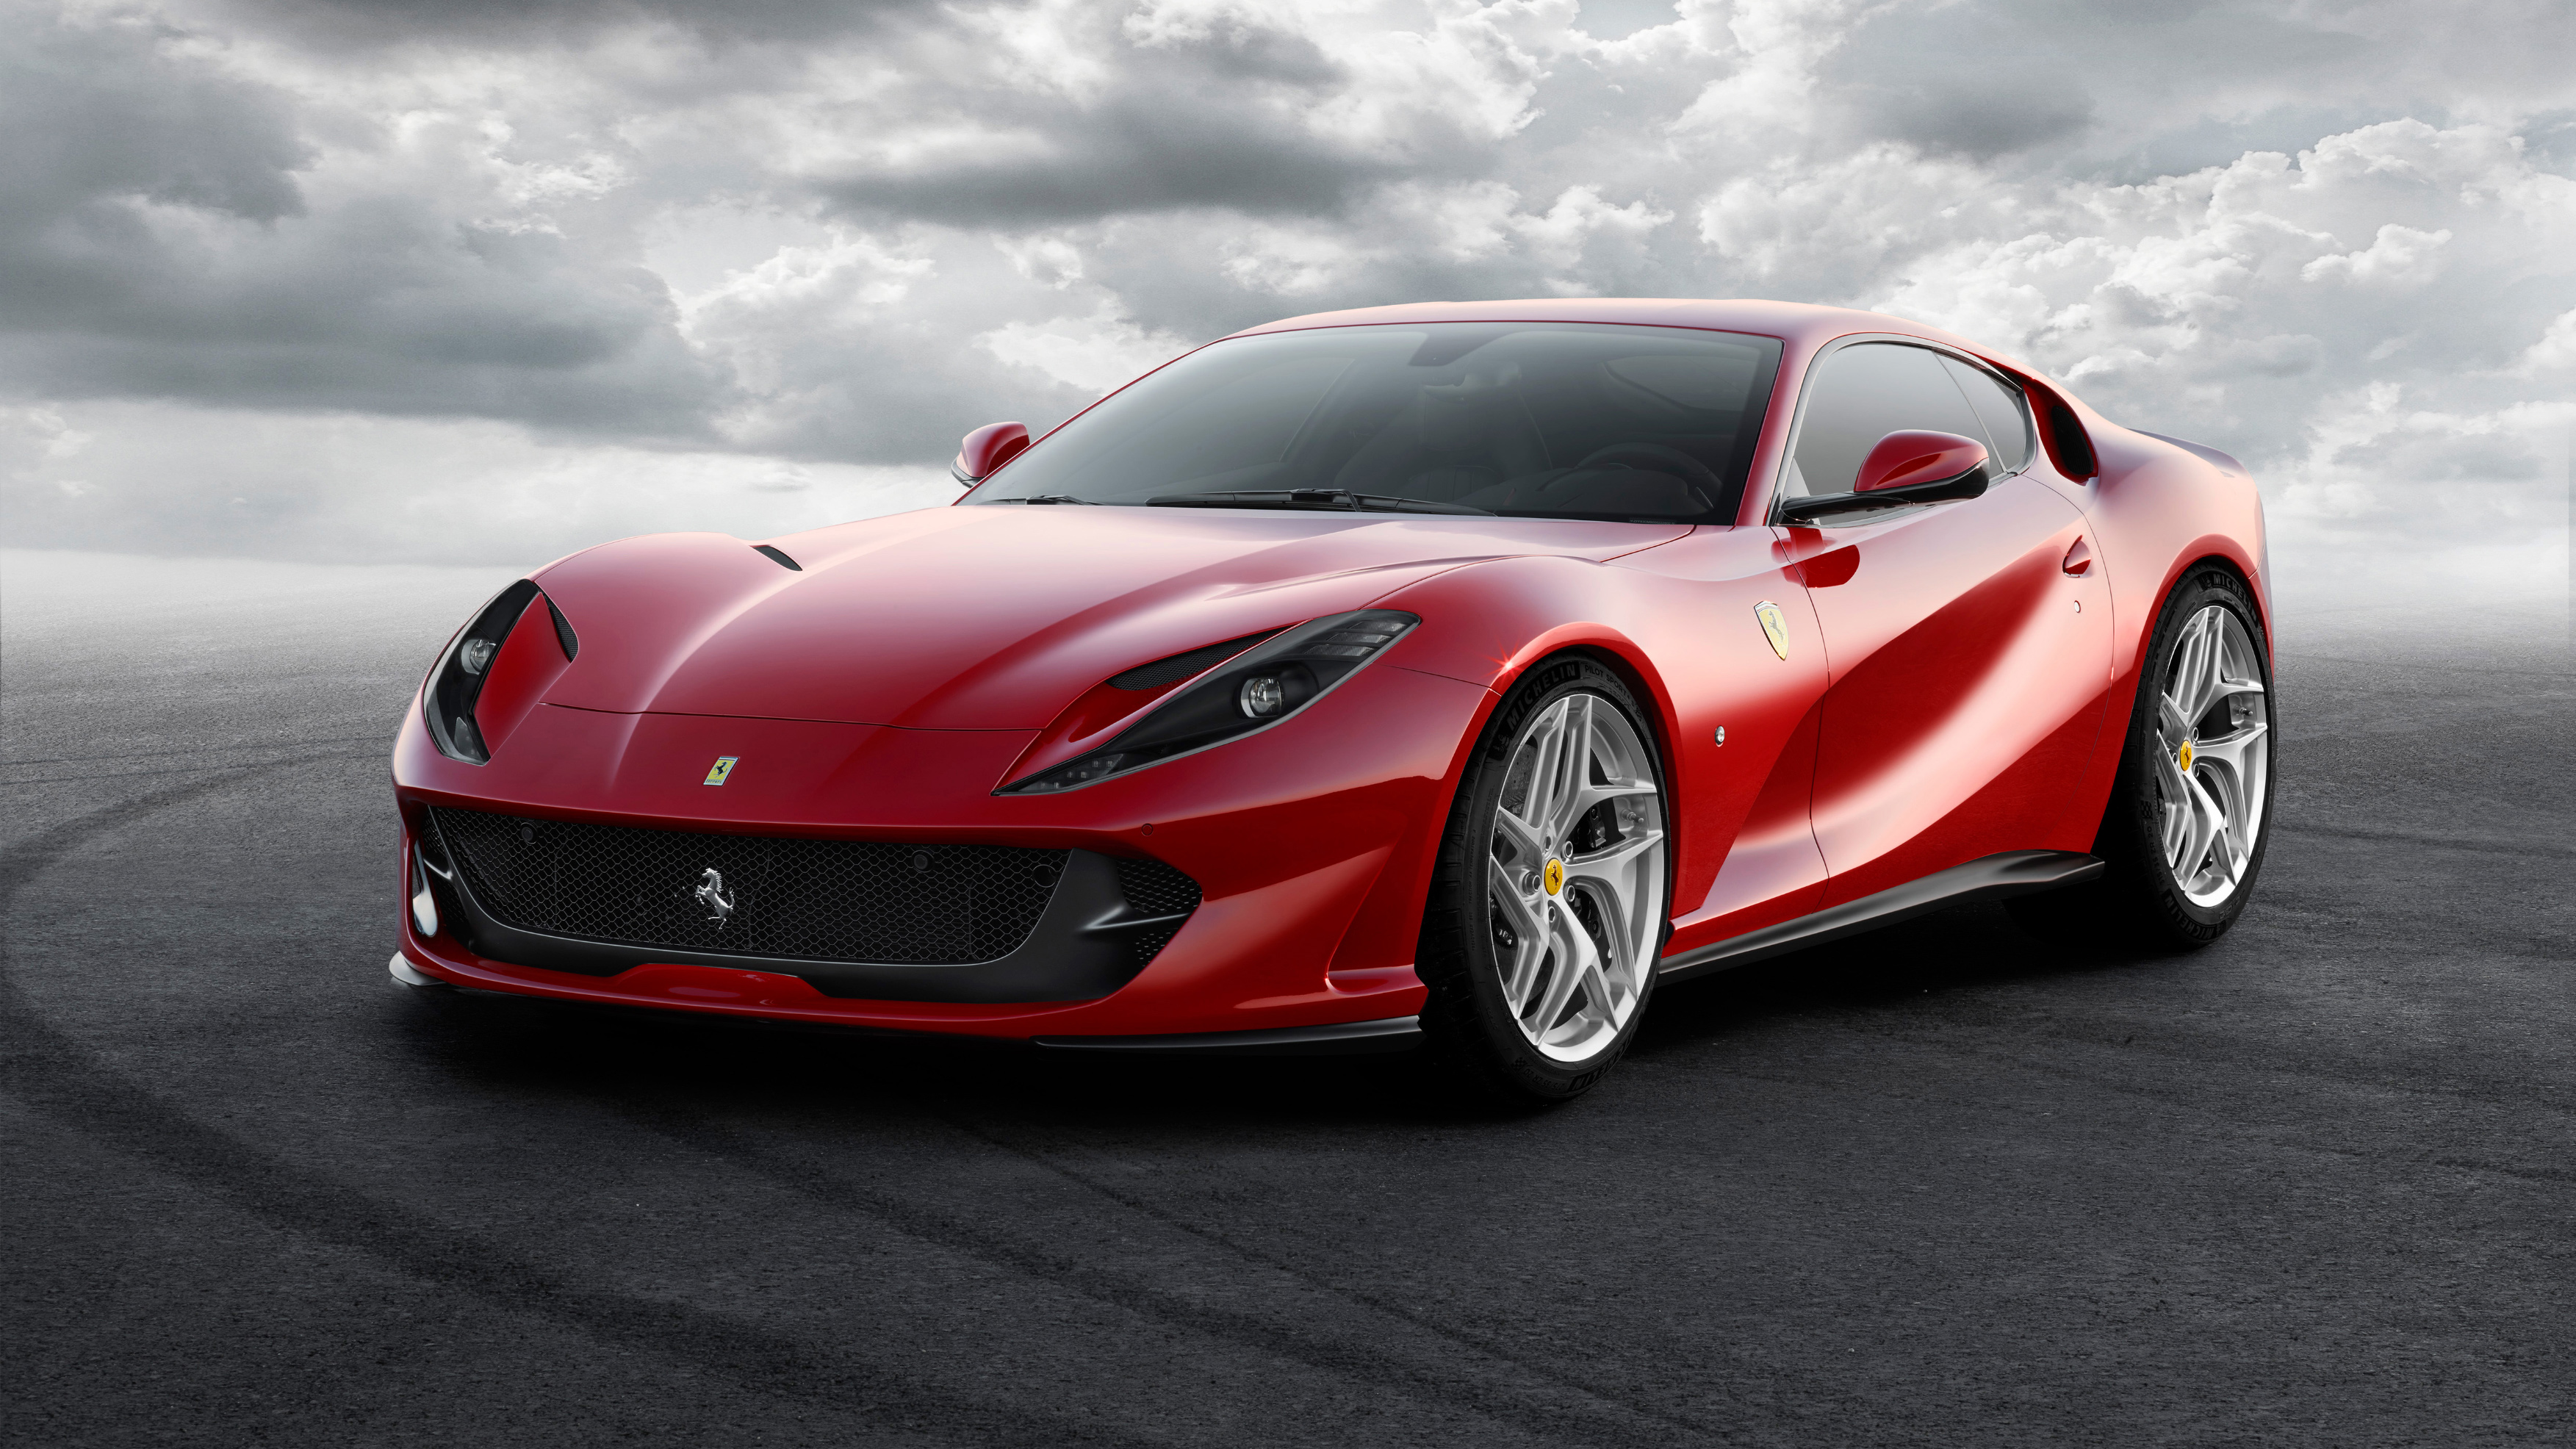 2017 Ferrari 812 Superfast Wallpaper